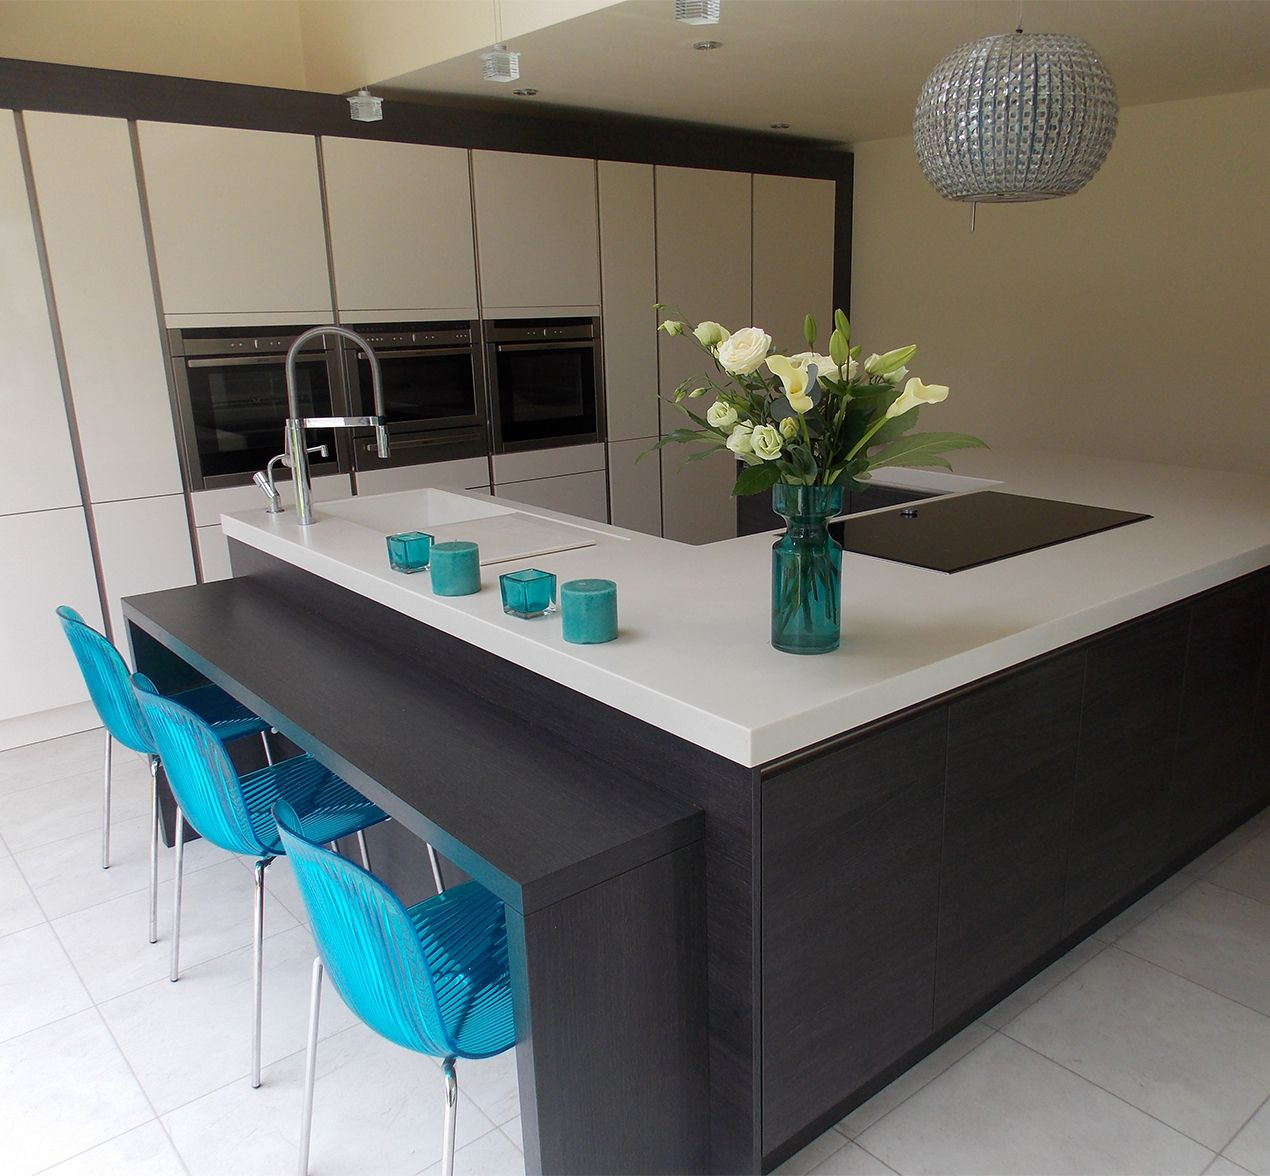 Timeless design meets practical family living in Urmston